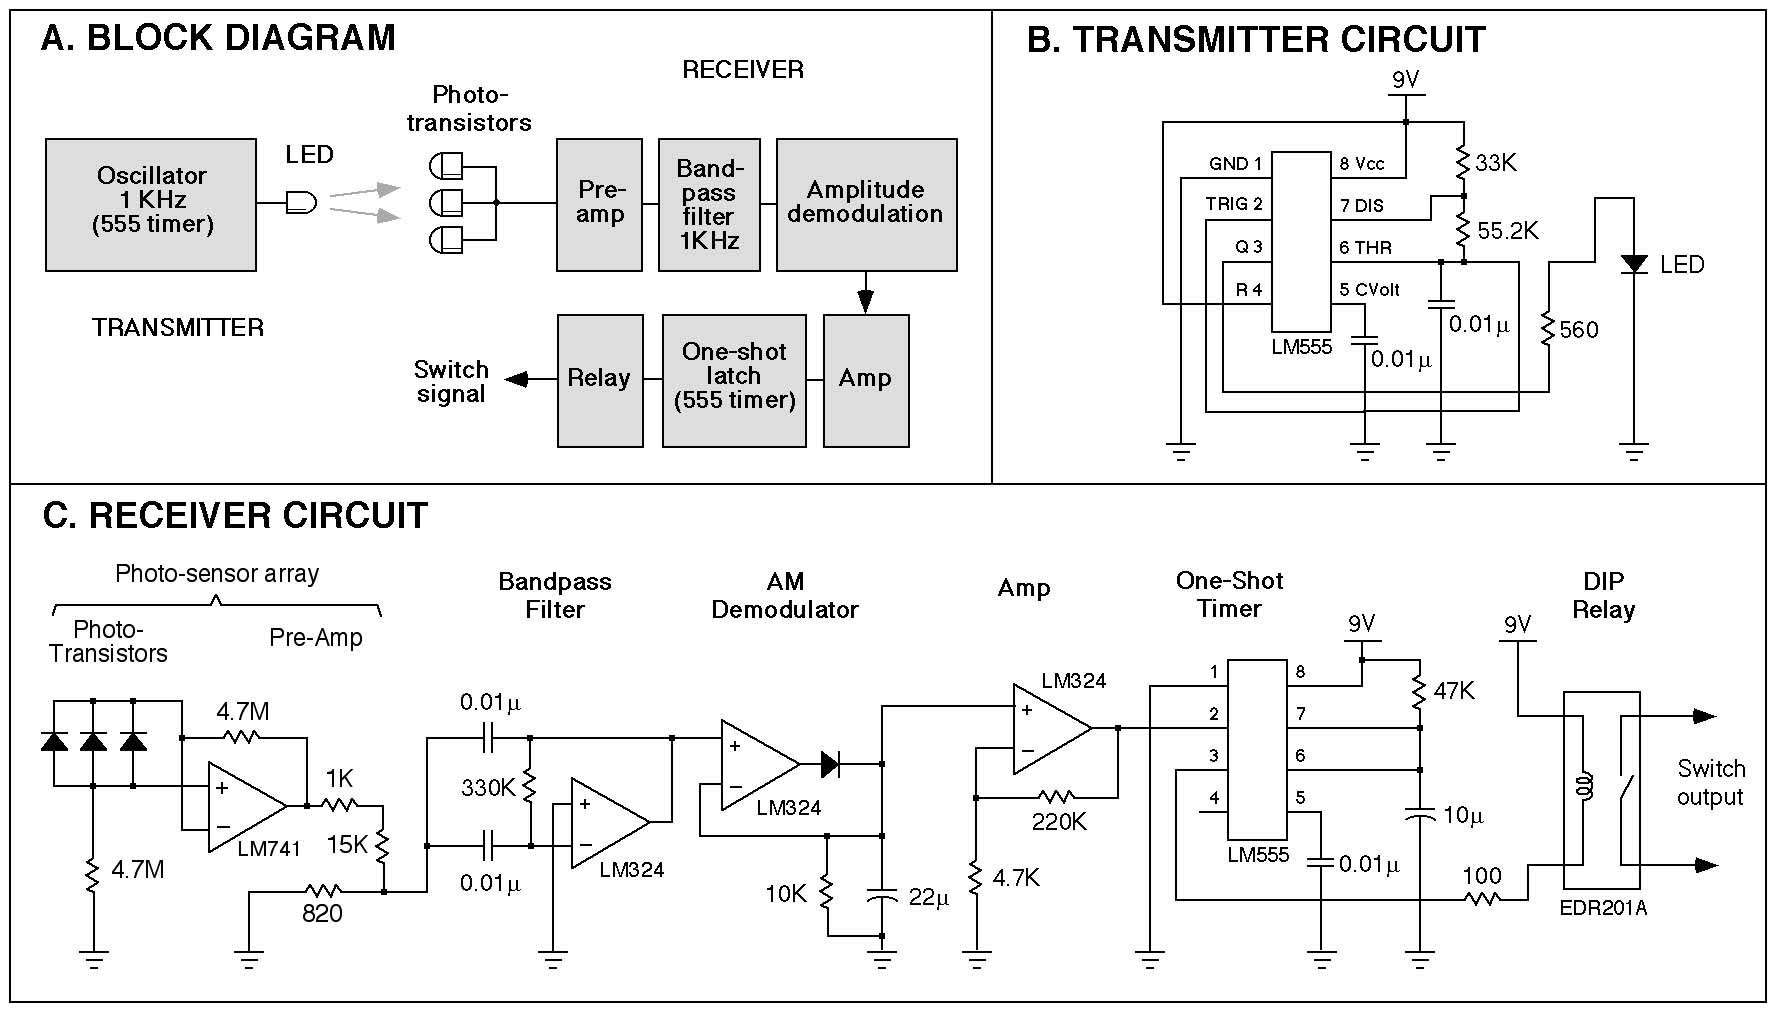 Design Of A Light Activated Switch With Improved Specificity For Laser Communication Receiver Circuit Schematic This Figure Shows Block Diagram The